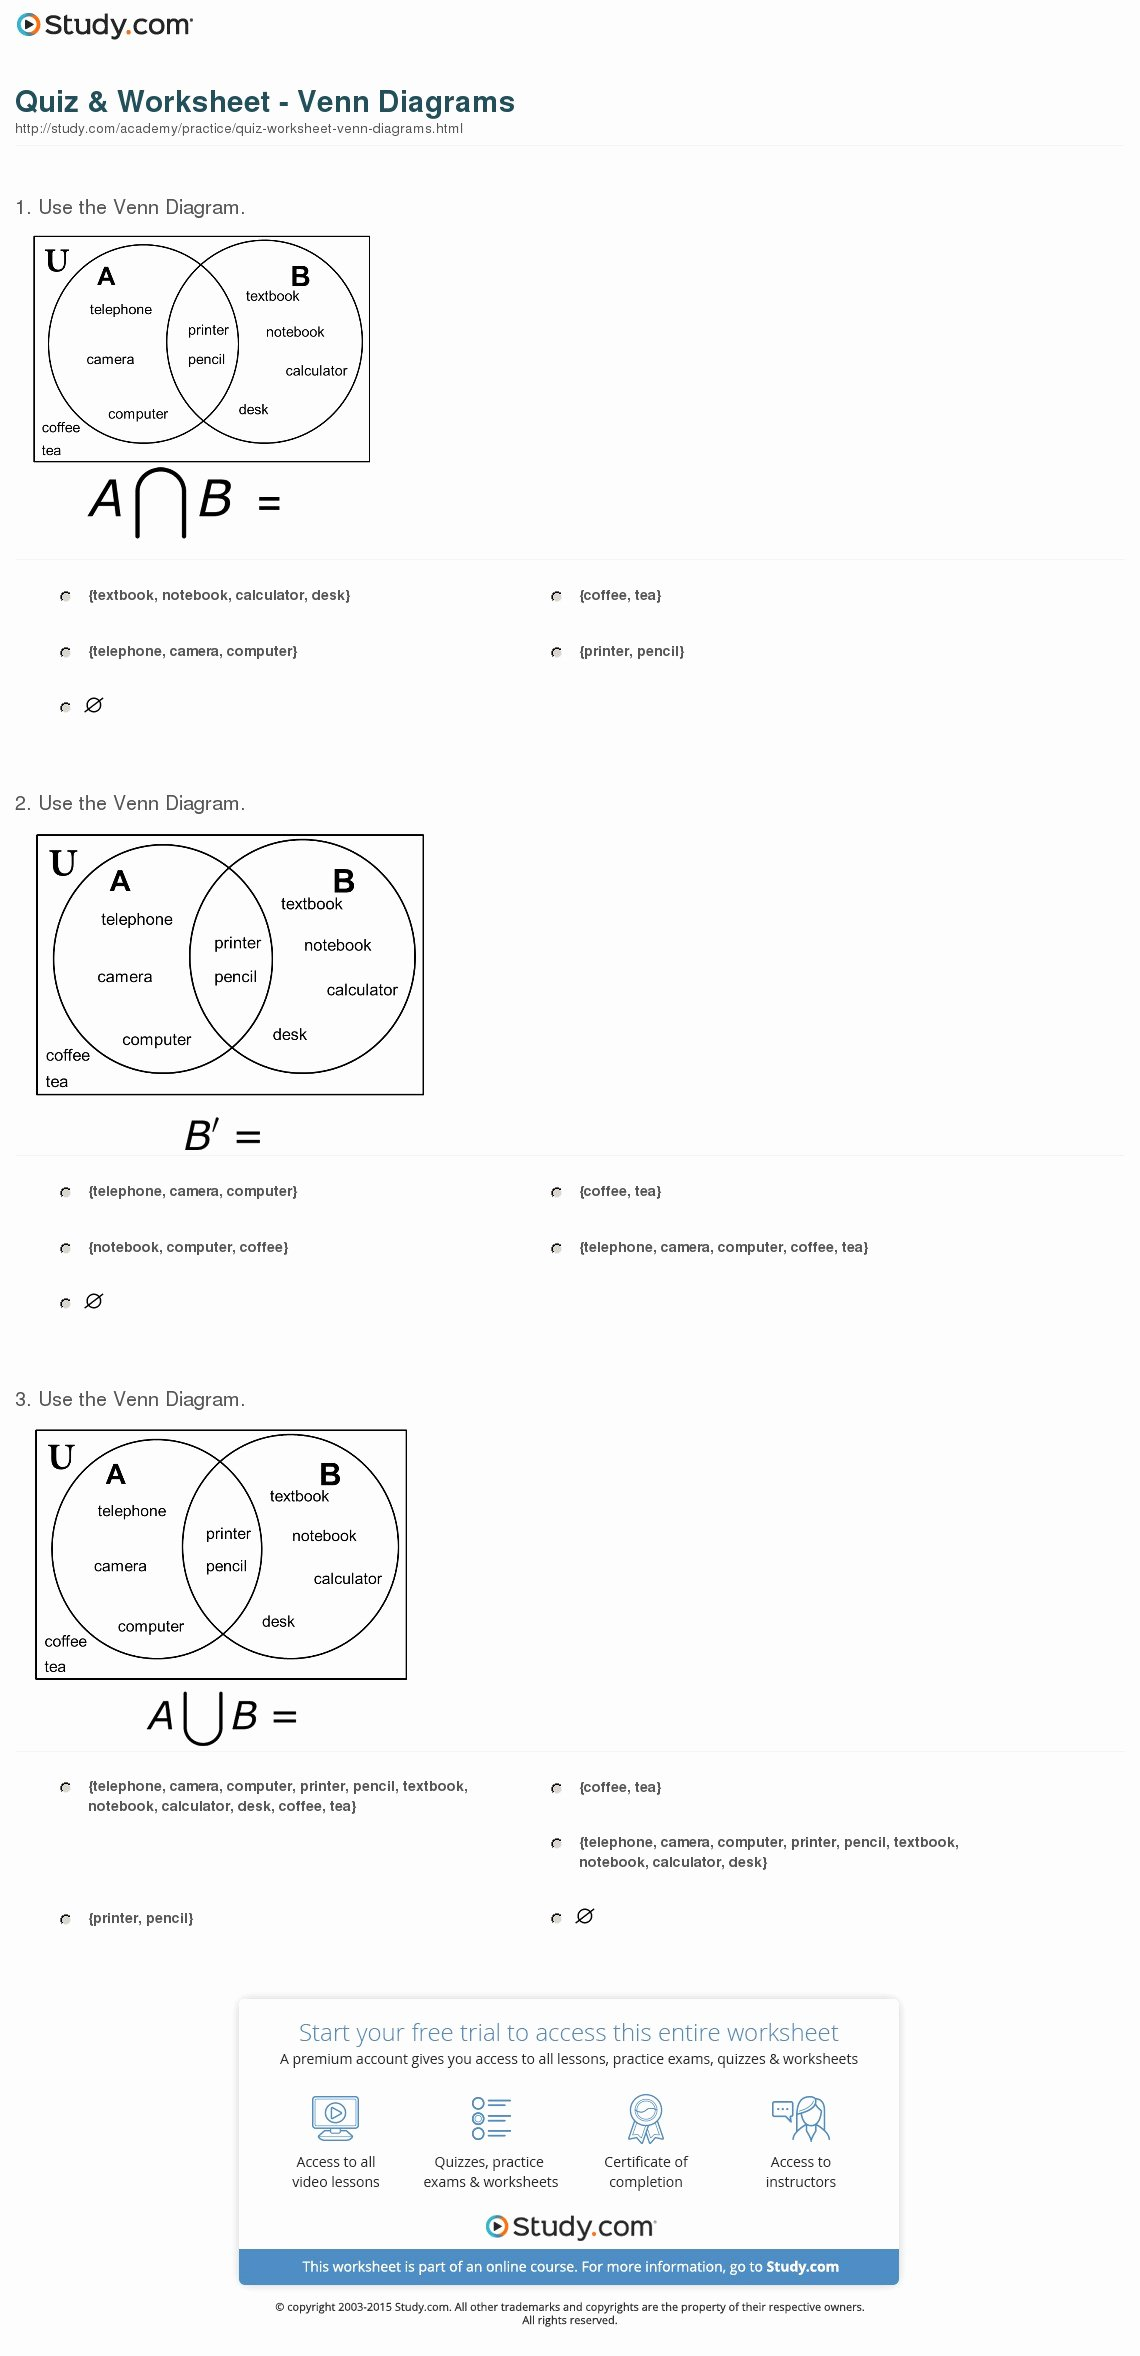 Venn Diagrams Worksheet Best Of Quiz & Worksheet Venn Diagrams